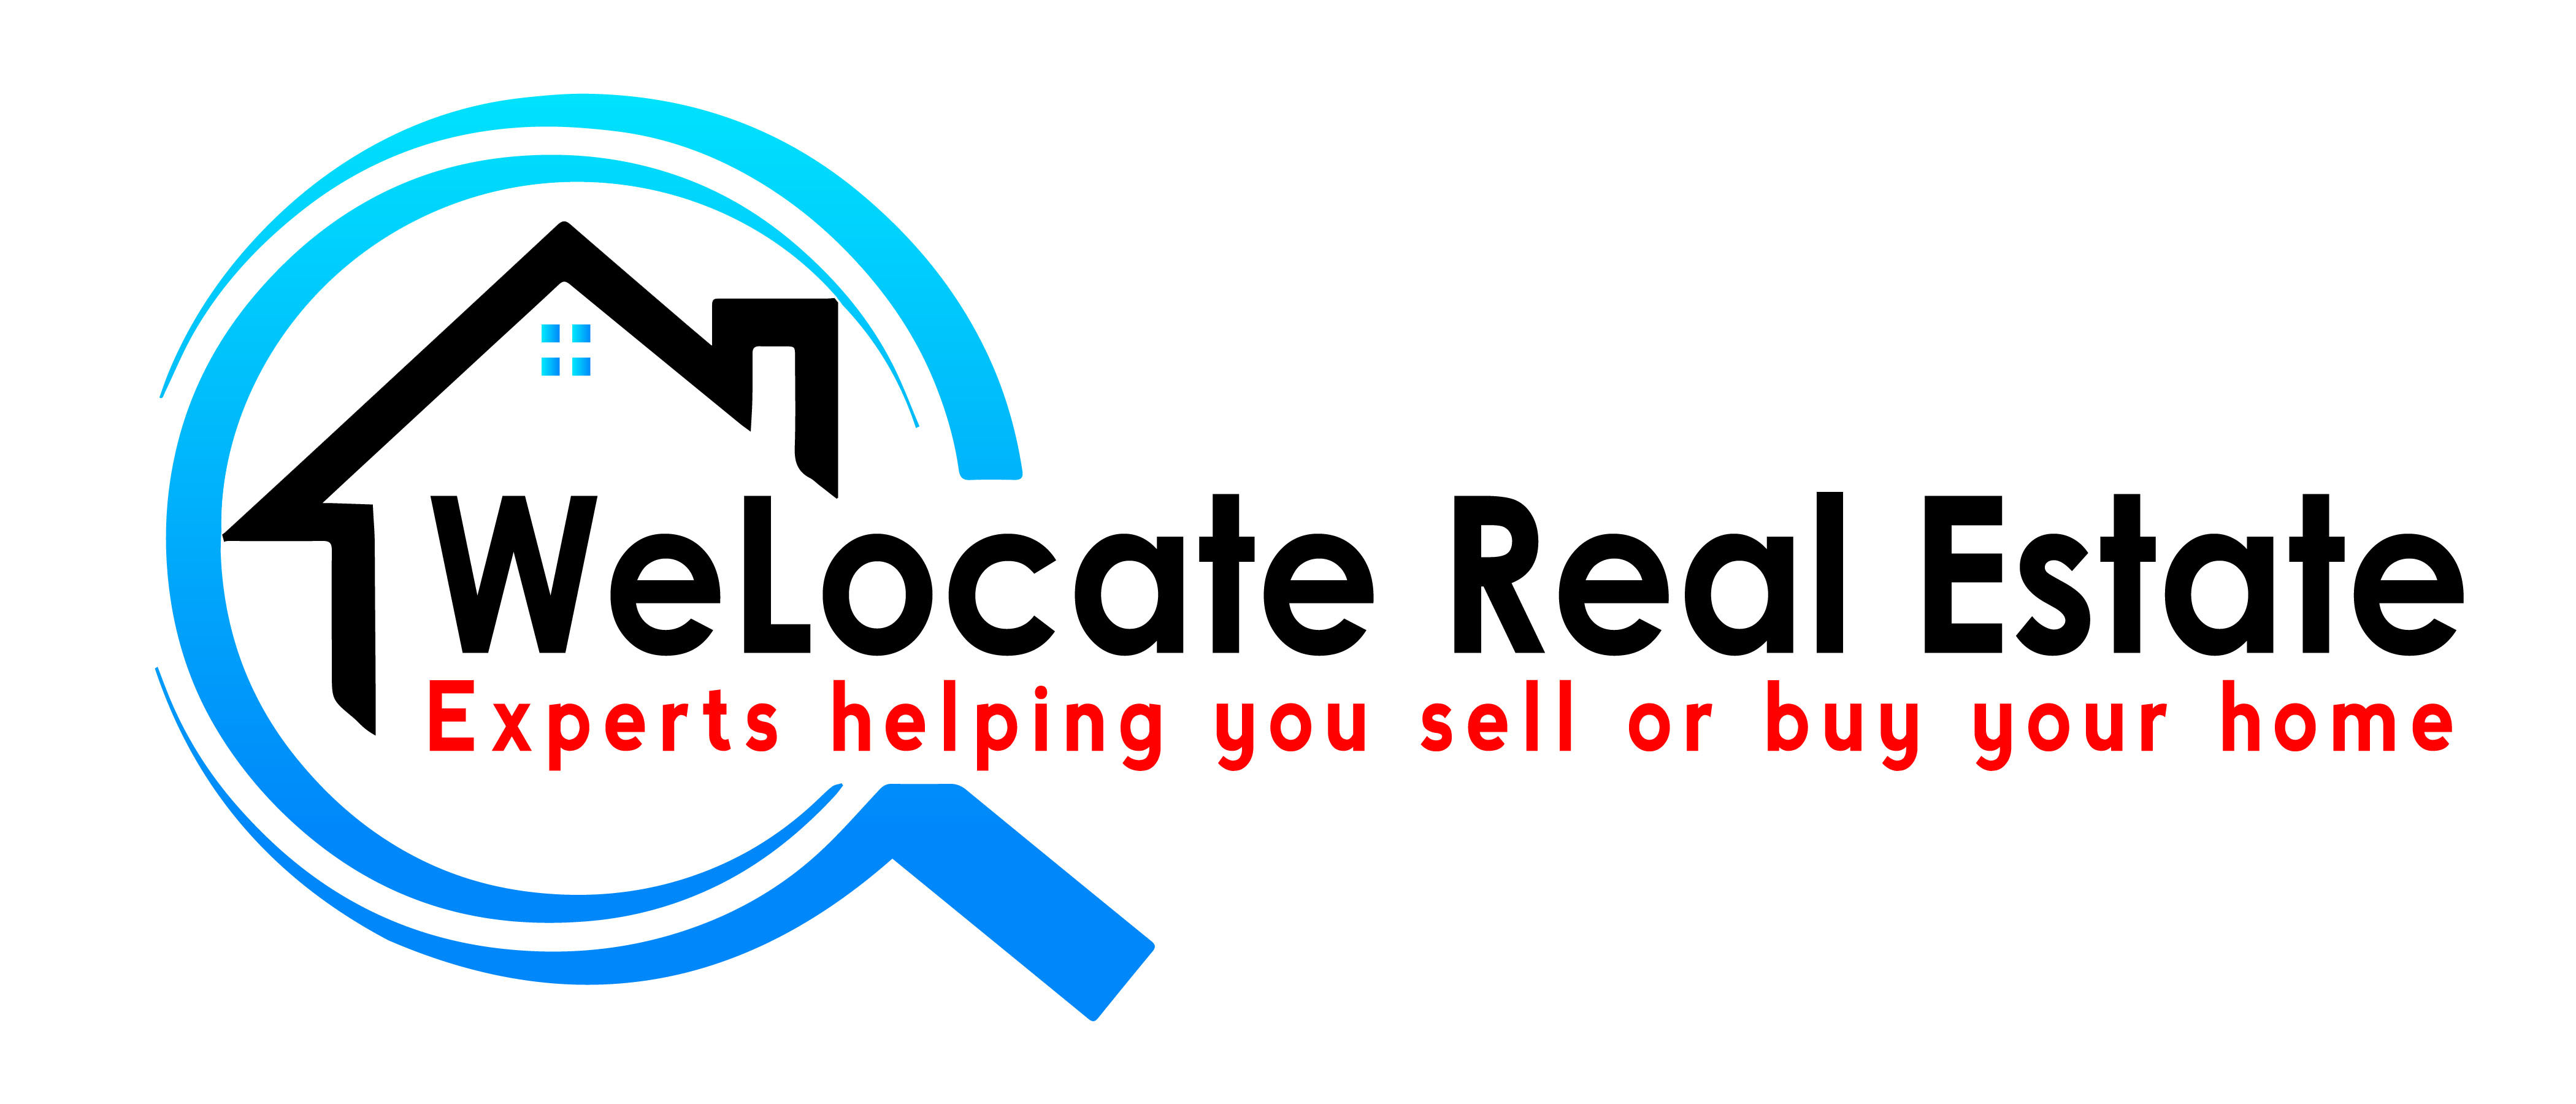 WeLocate Real Estate